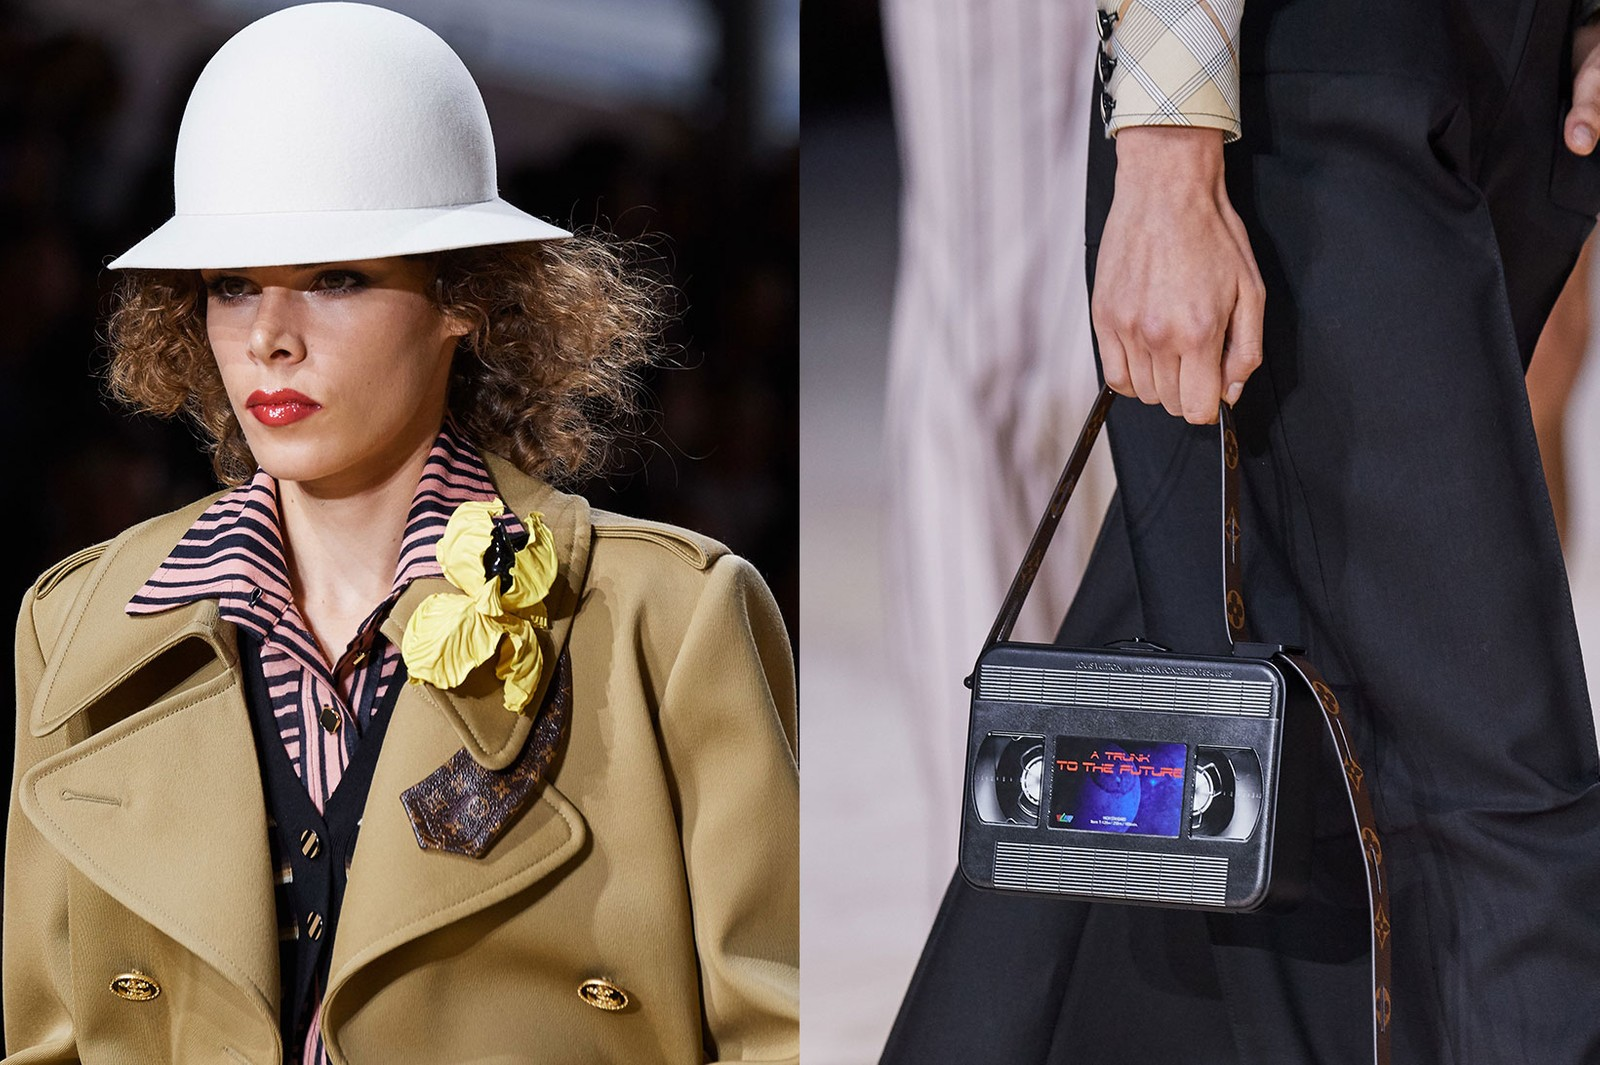 louis vuitton spring summer 2020 collection paris fashion week pfw cour carrée the Louvre nicolas ghesquiere